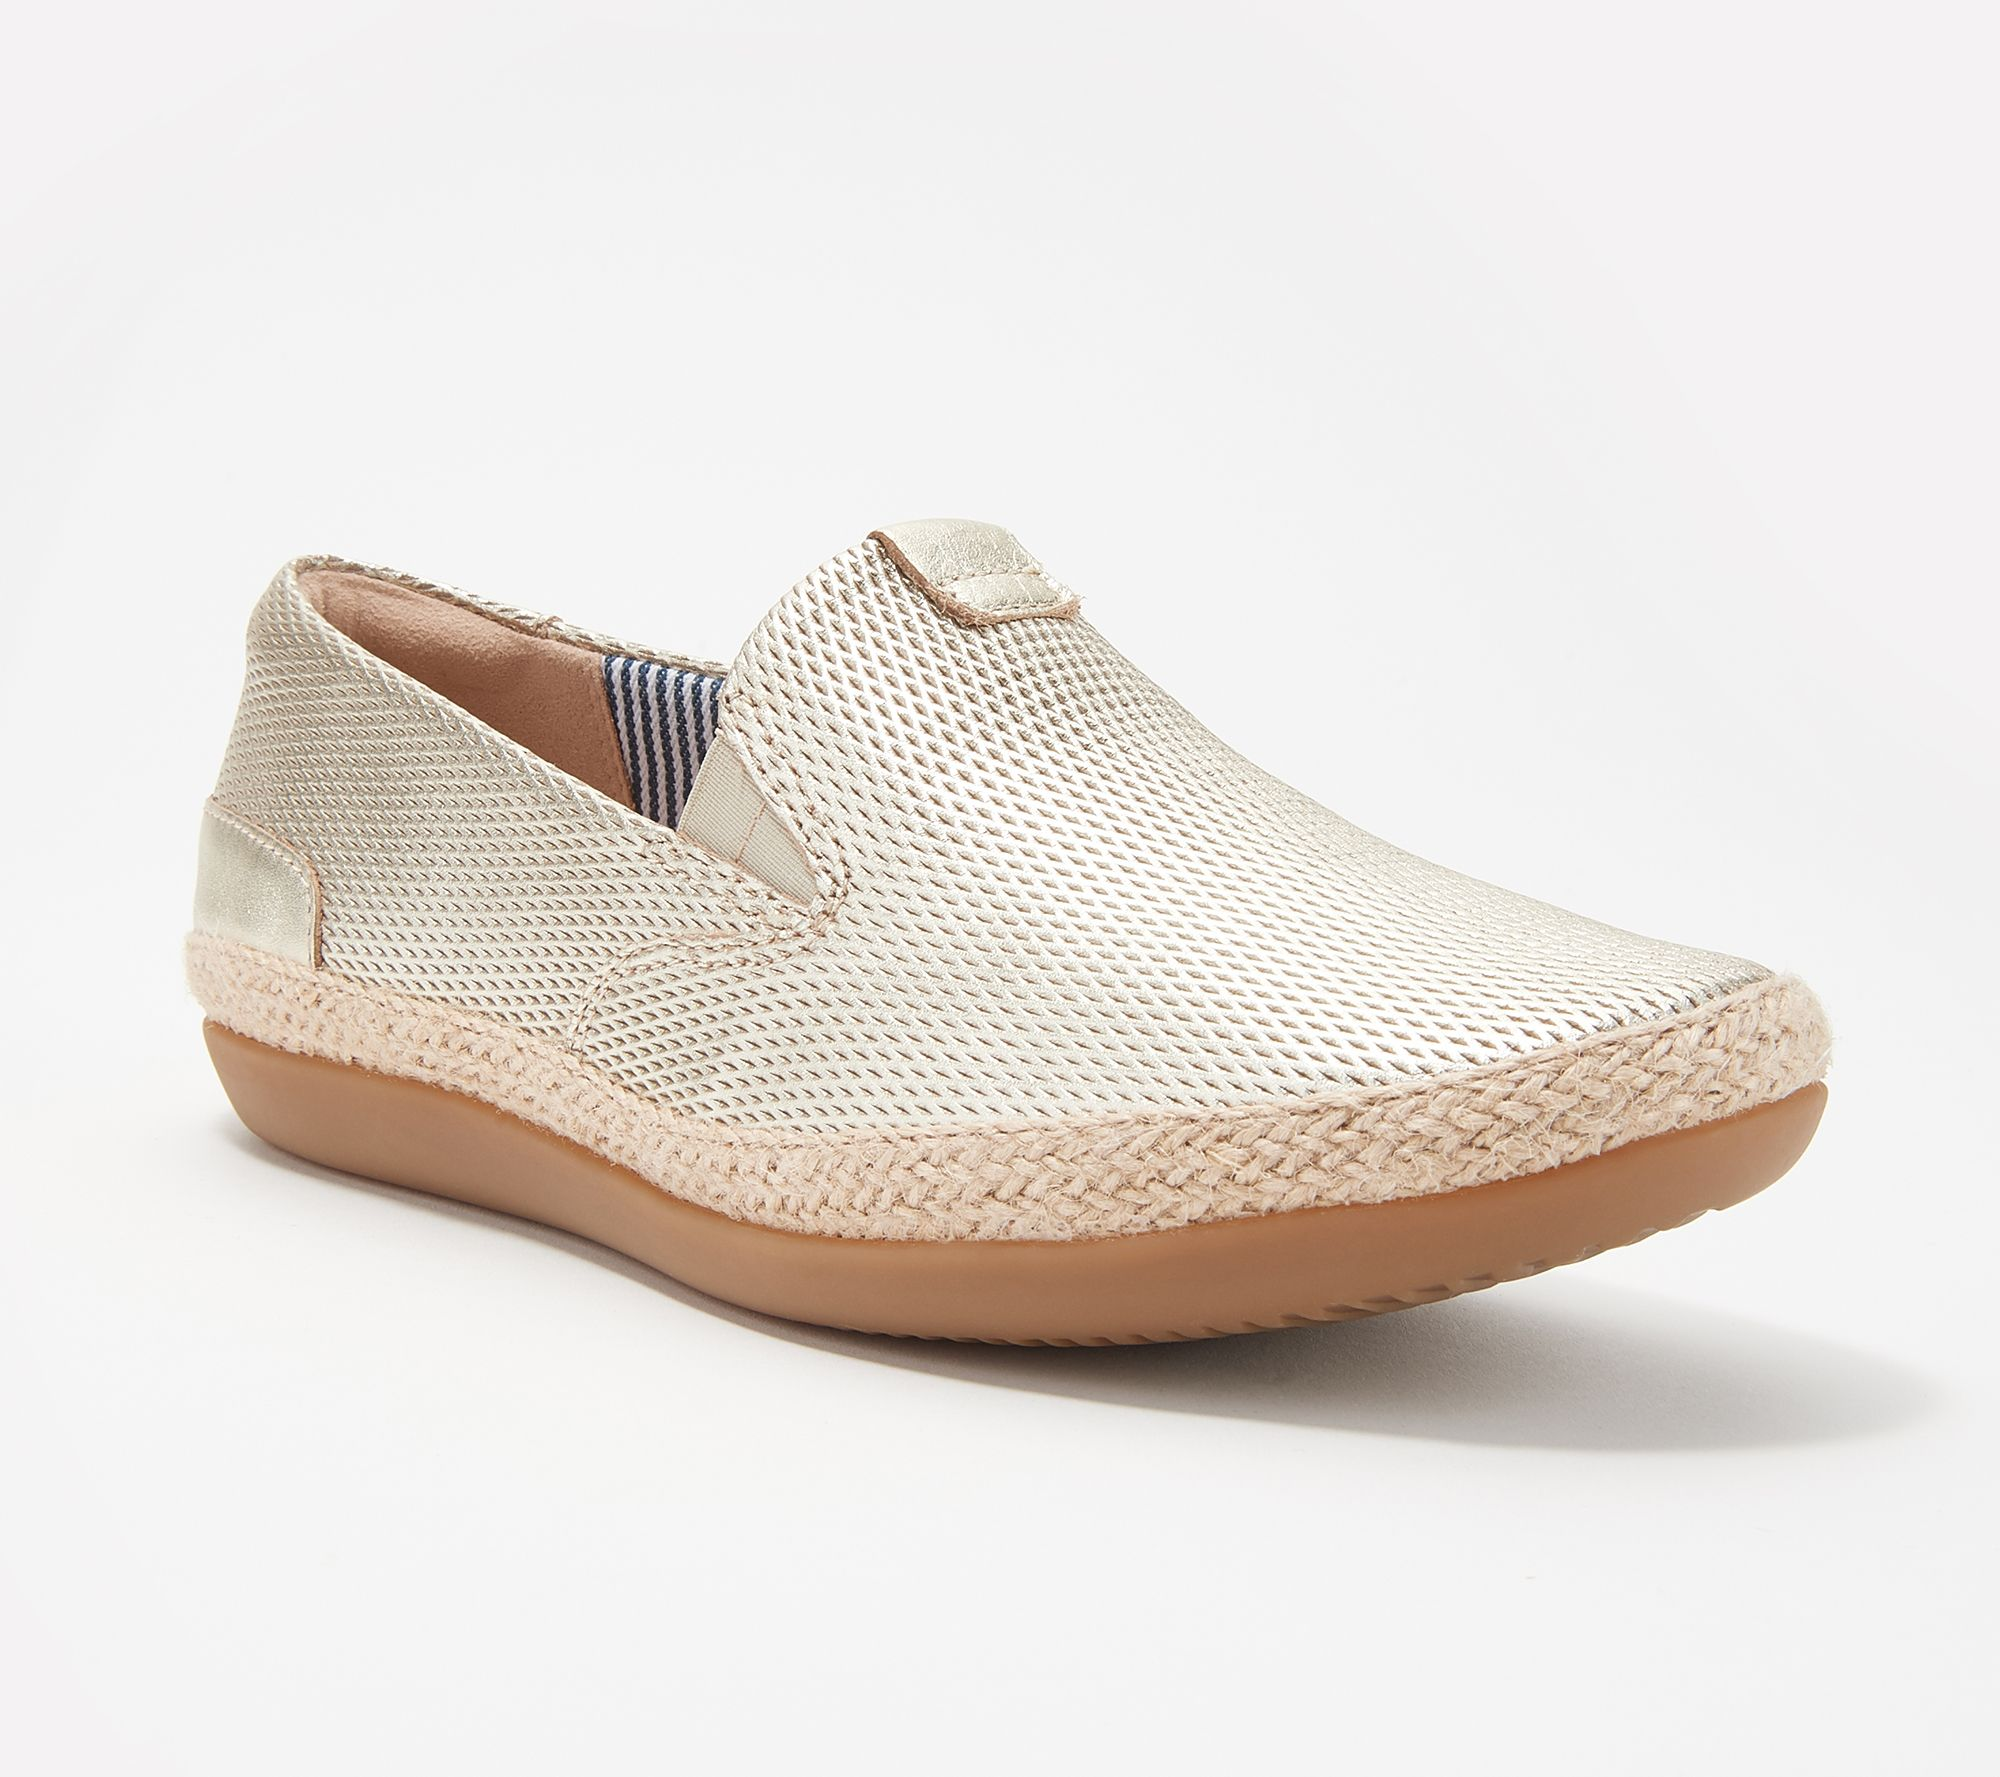 d37038beaa5 Clarks Collection Leather Slip-Ons - Danelly Iris — QVC.com